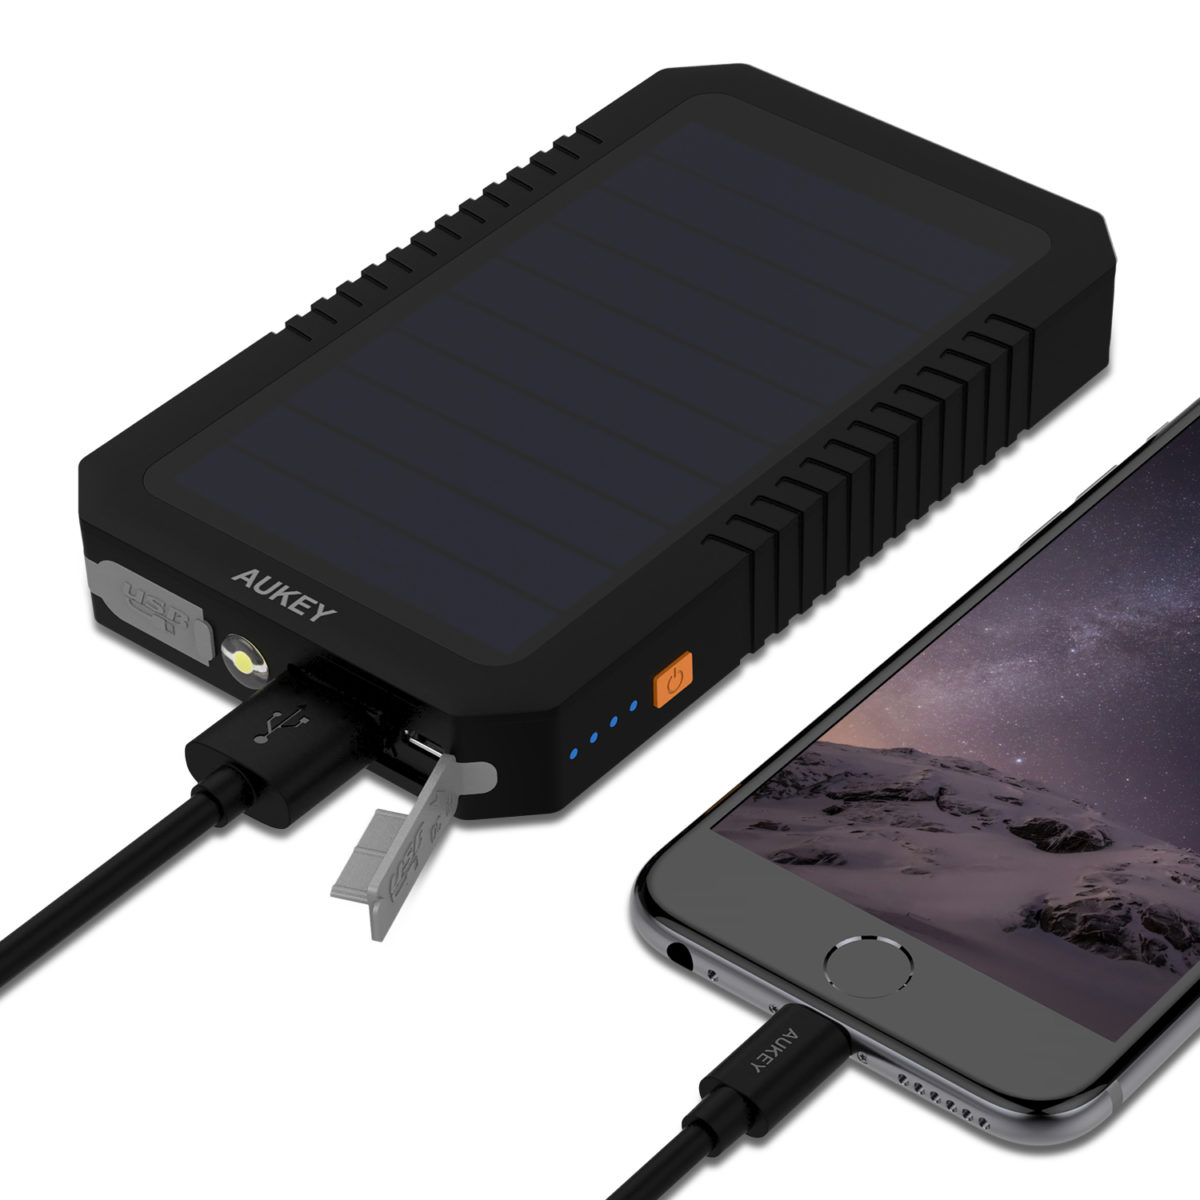 http://s3-eu-central-1.amazonaws.com/images.aukeypowerbanks.gr/wp/wp-content/uploads/2017/02/12210011/solar-powerbank-aukey-12000-pb-p8-9-black-1200x1200.jpg